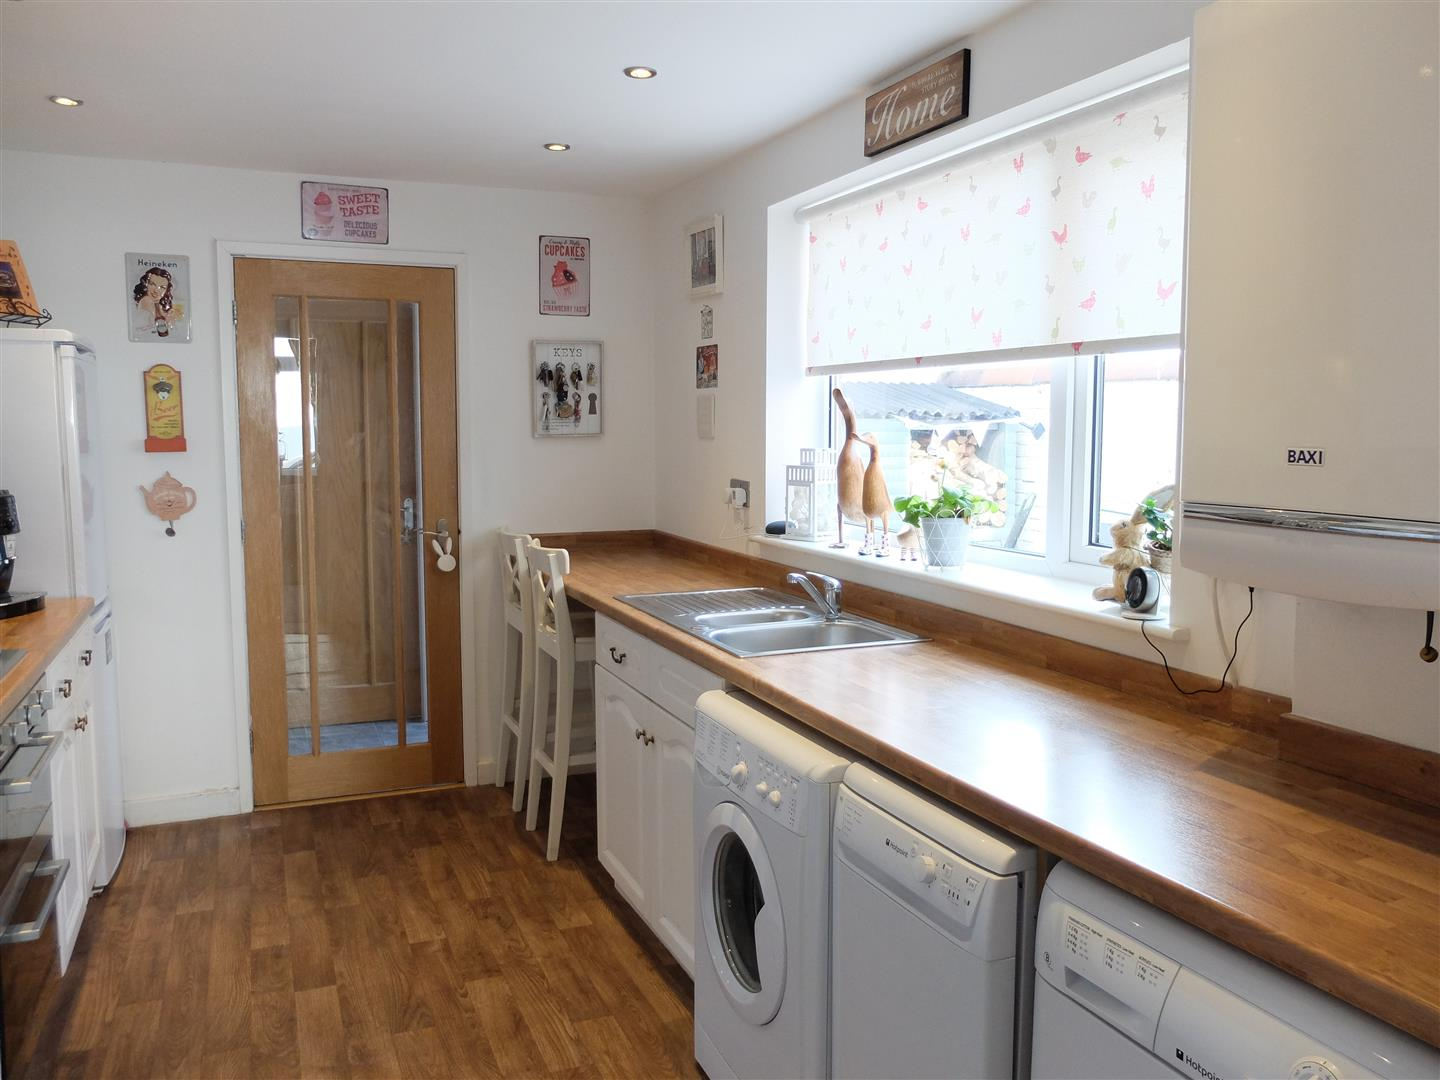 2 Bedrooms House - Mid Terrace On Sale 1 Blundell Terrace Carlisle